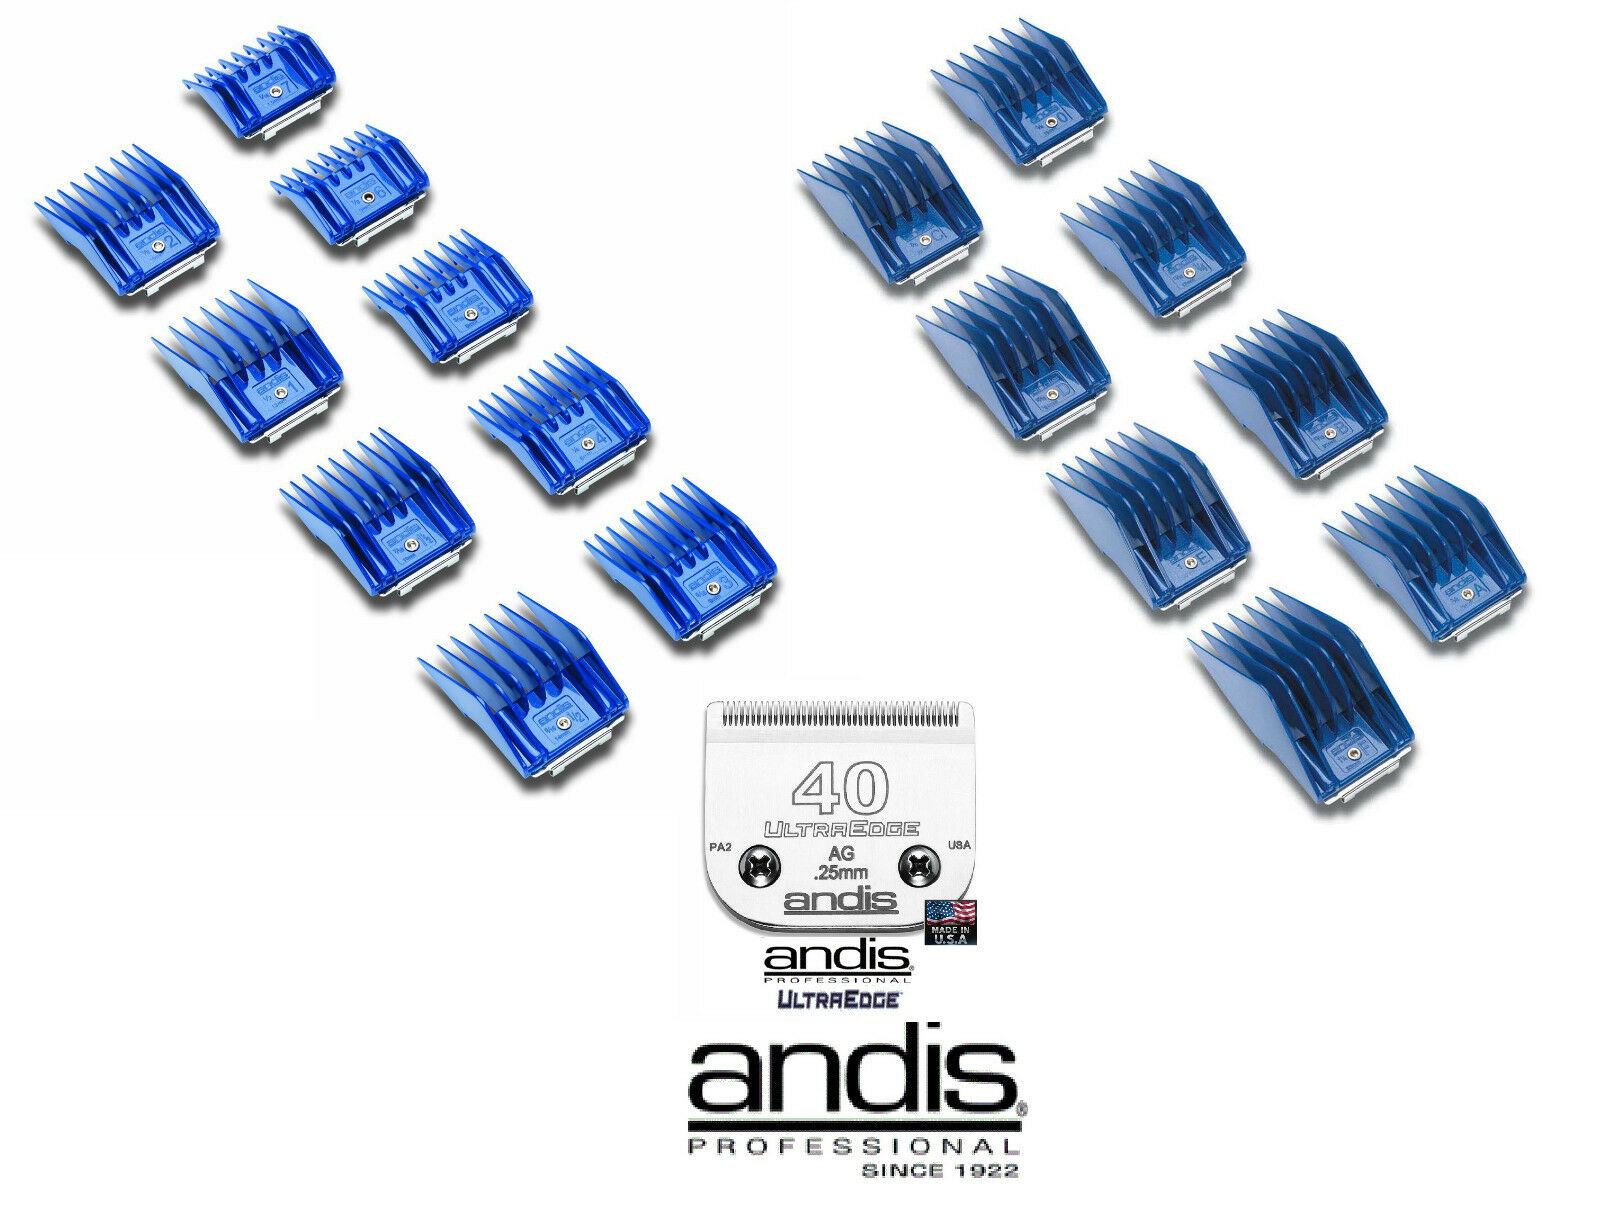 Andis Universale Guida Clip On Pettini Completo 17pc SET&40 Ultraedge A5 Lama